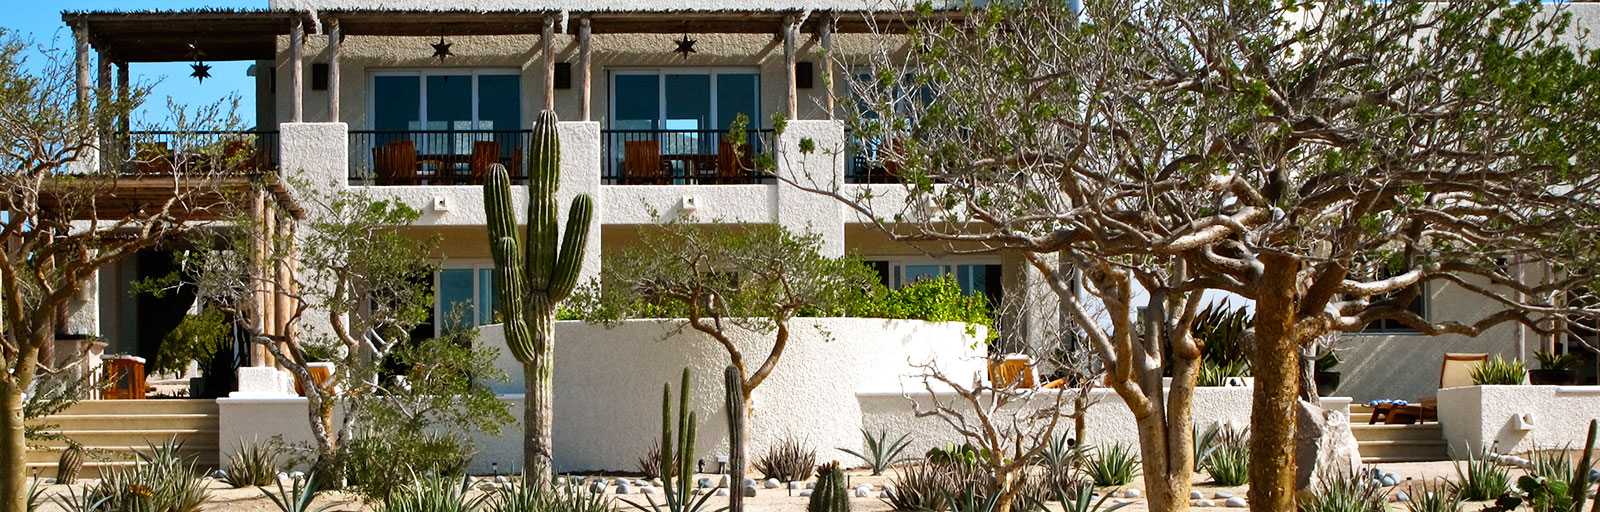 Mexico Yoga Retreat Center in Baja: Community Building & Gardens